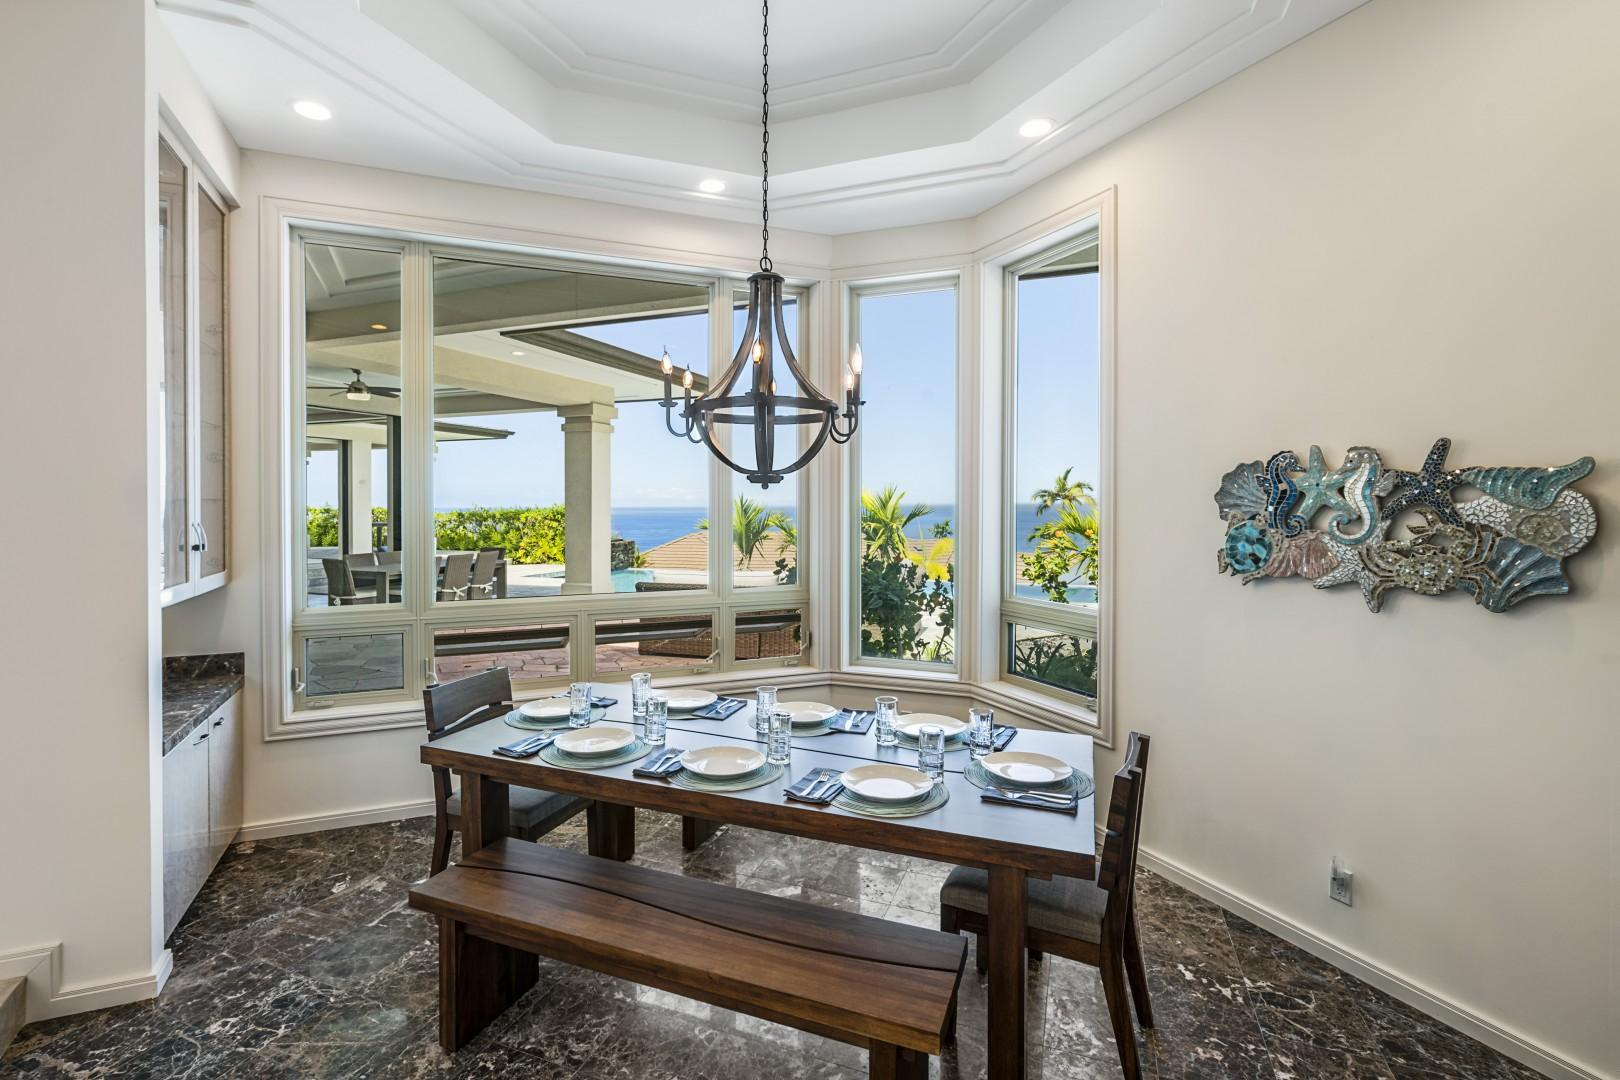 Indoor dining for 8 with a spectacular ocean view!